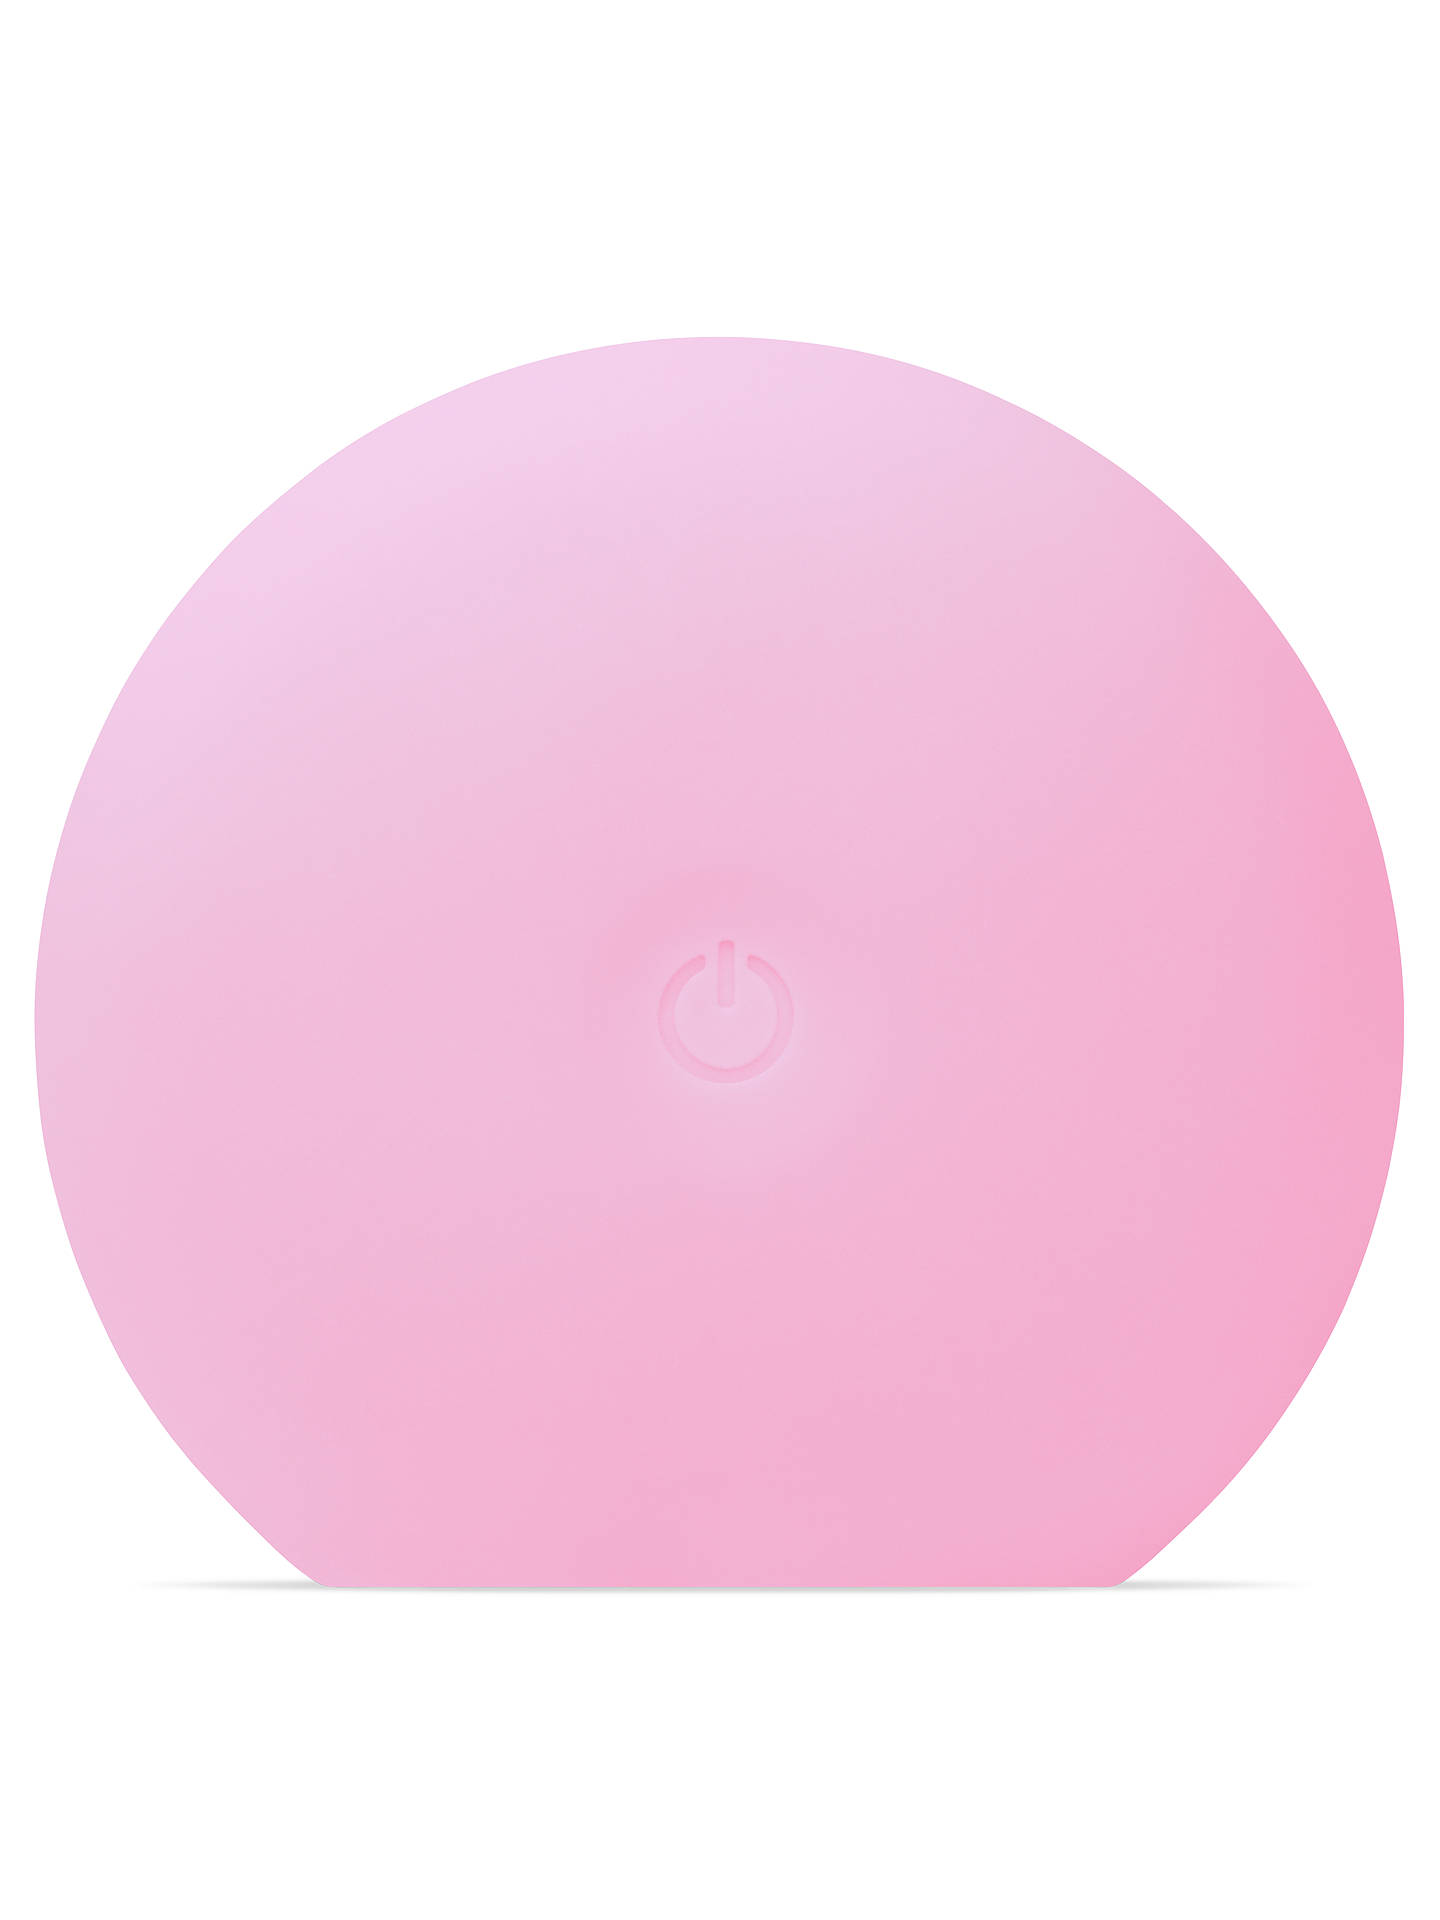 BuyFOREO Luna Play Plus Electric Facial Cleanser, Pearl Pink Online at johnlewis.com